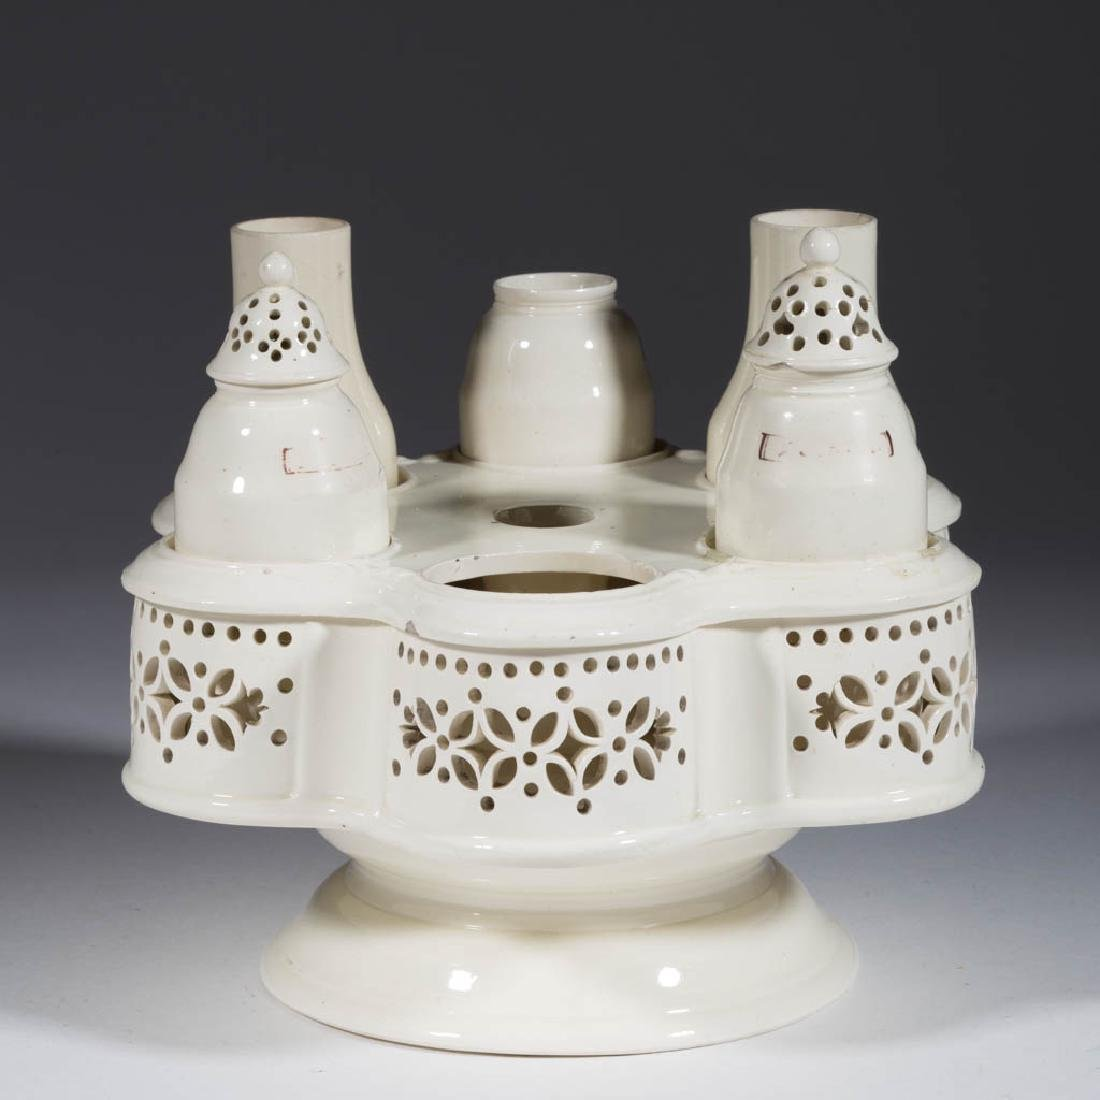 ENGLISH / CONTINENTAL CREAMWARE CERAMIC CONDIMENT SET